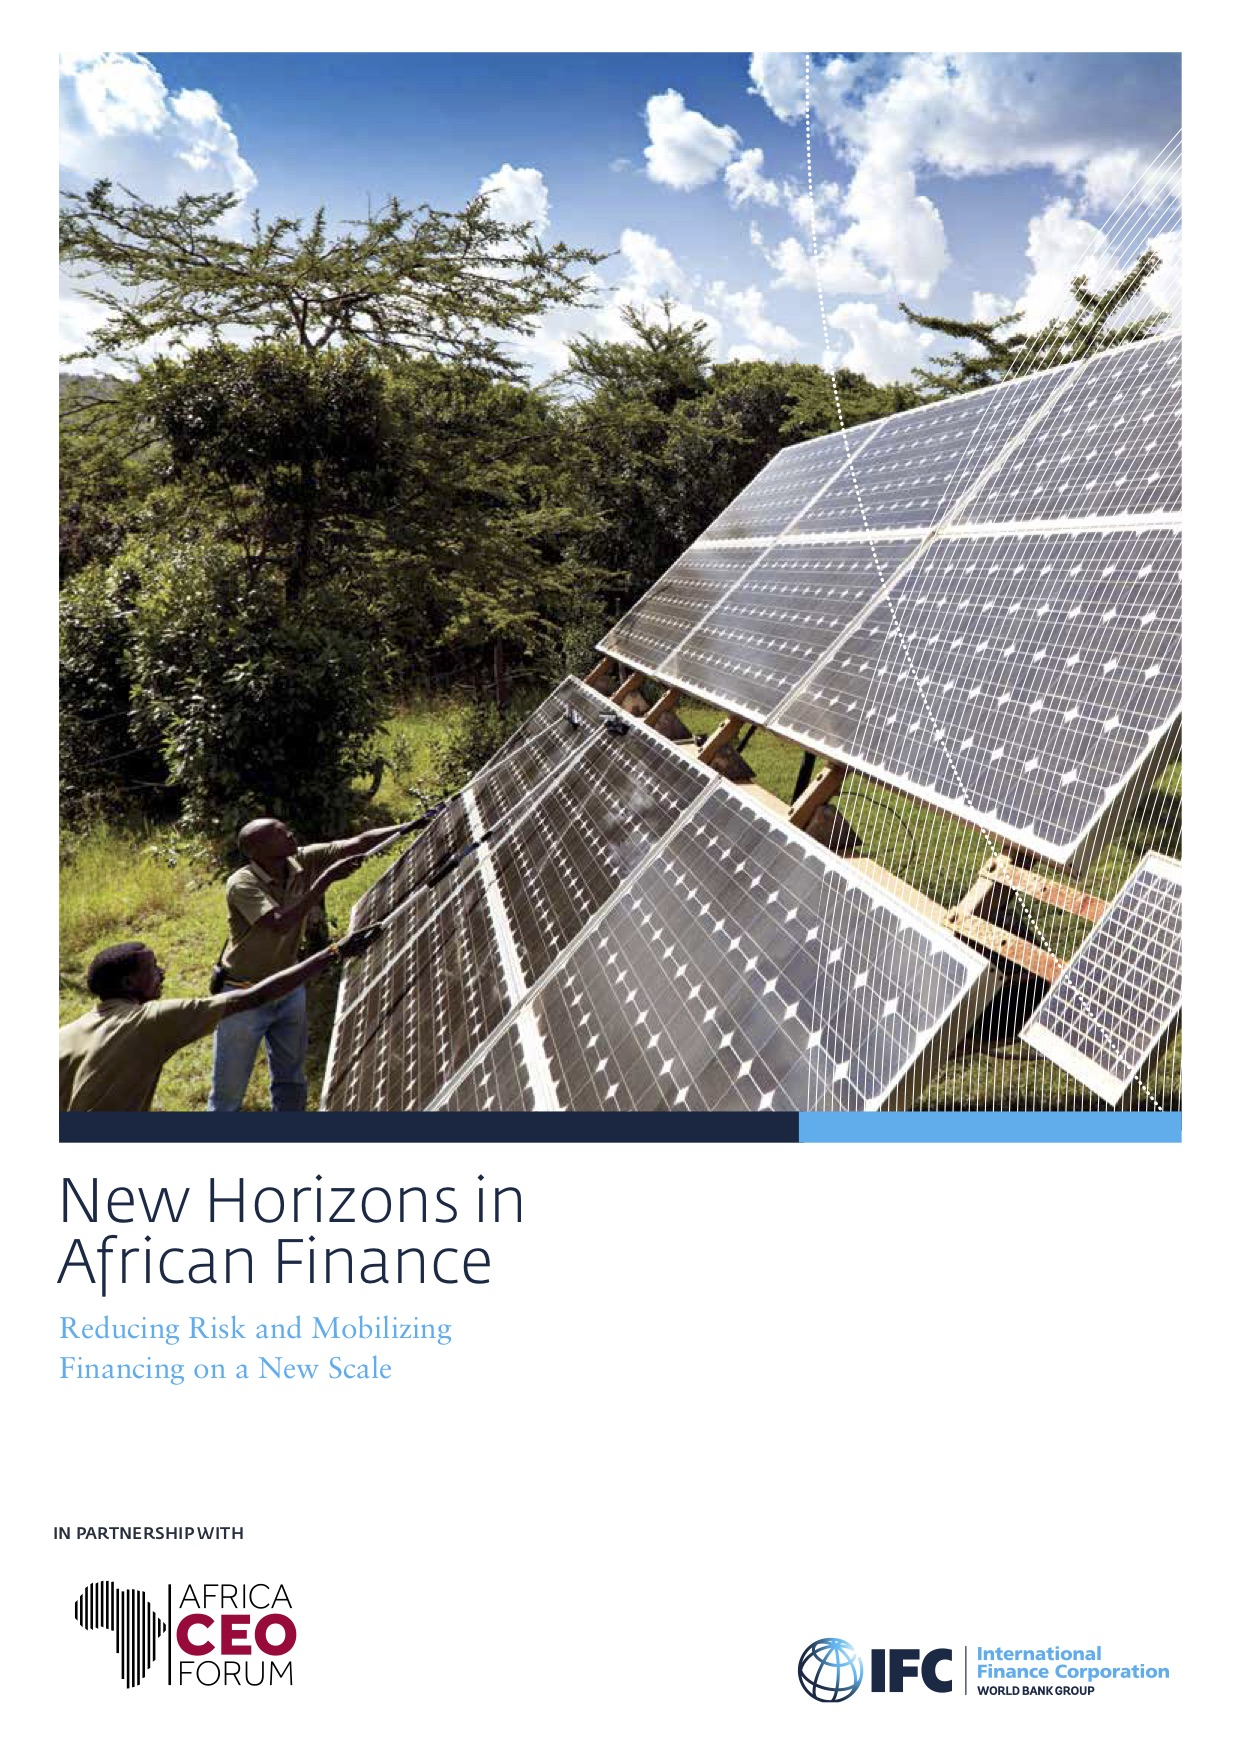 New Horizons in African Finance: Reducing Risk and Mobilizing Financing on New Scale